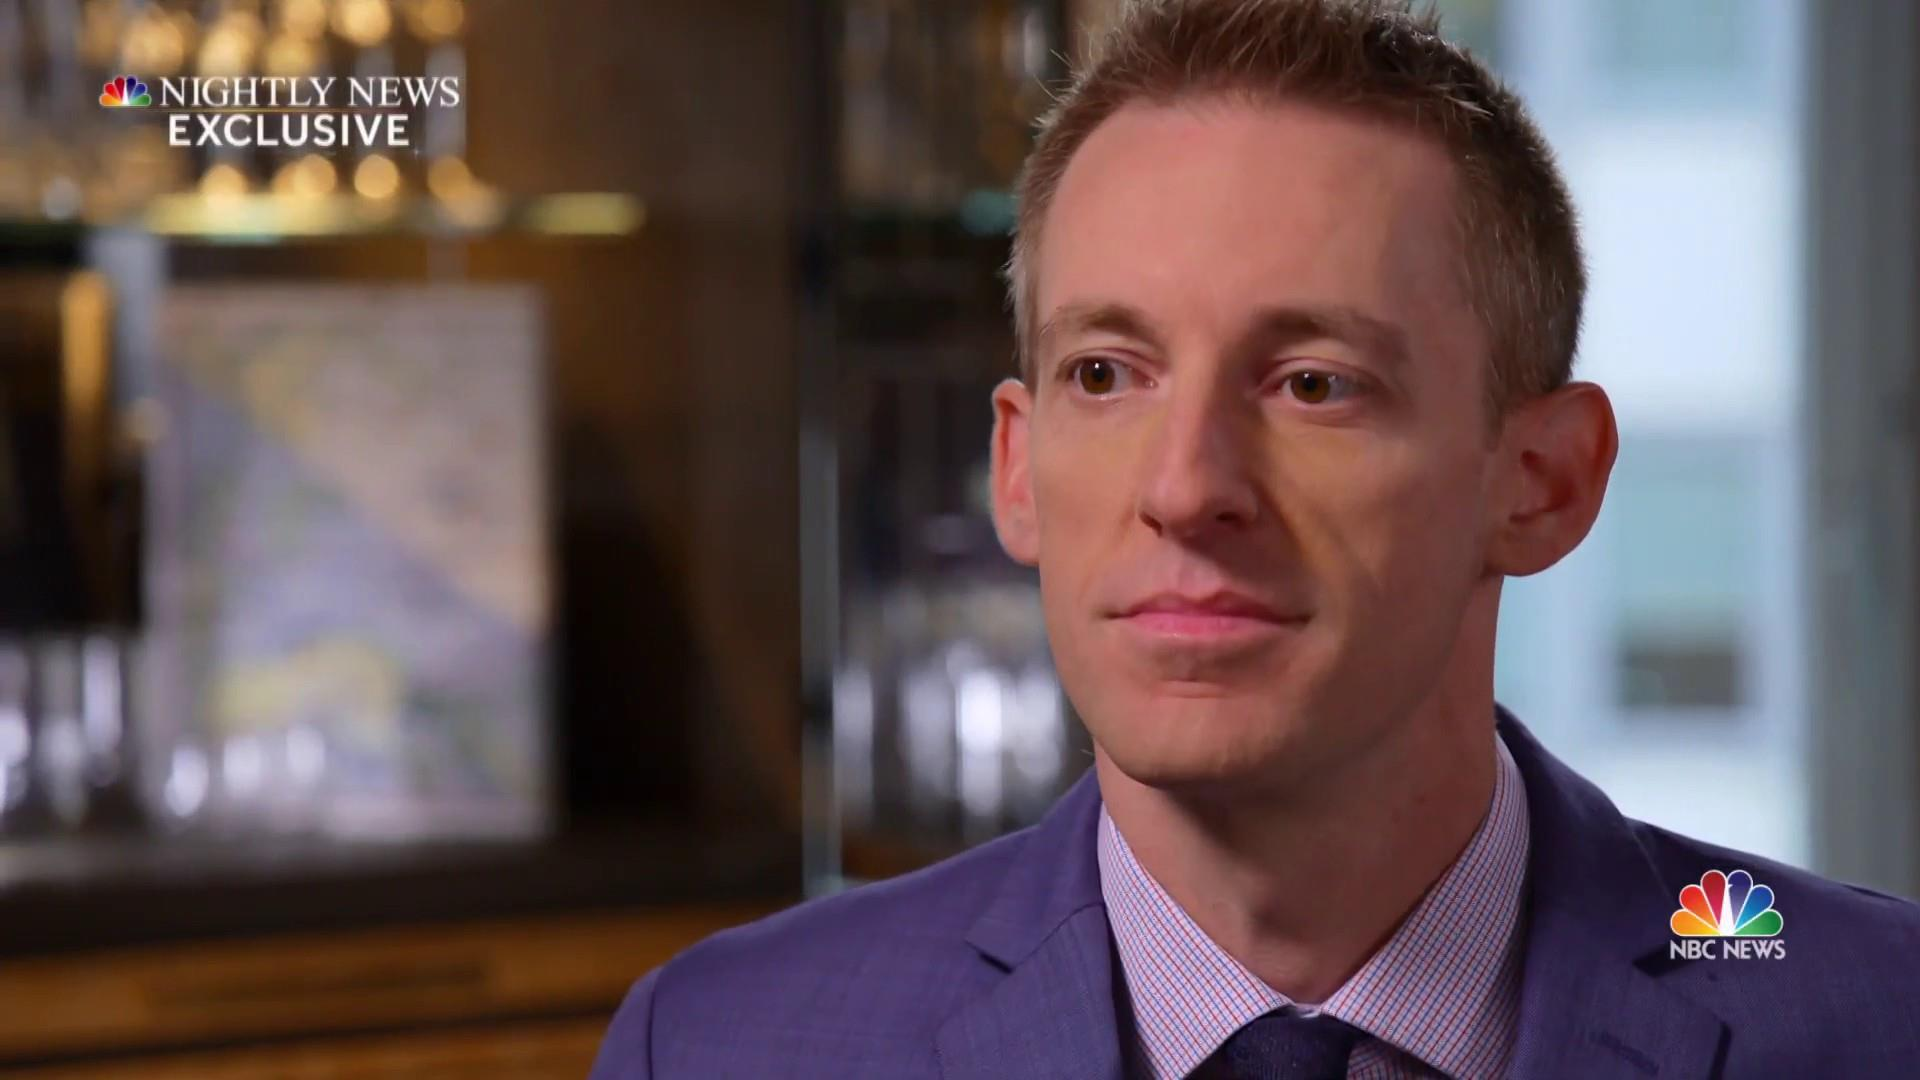 Former Democratic rising star and Afghanistan War veteran speaks out for first time about PTSD treatment